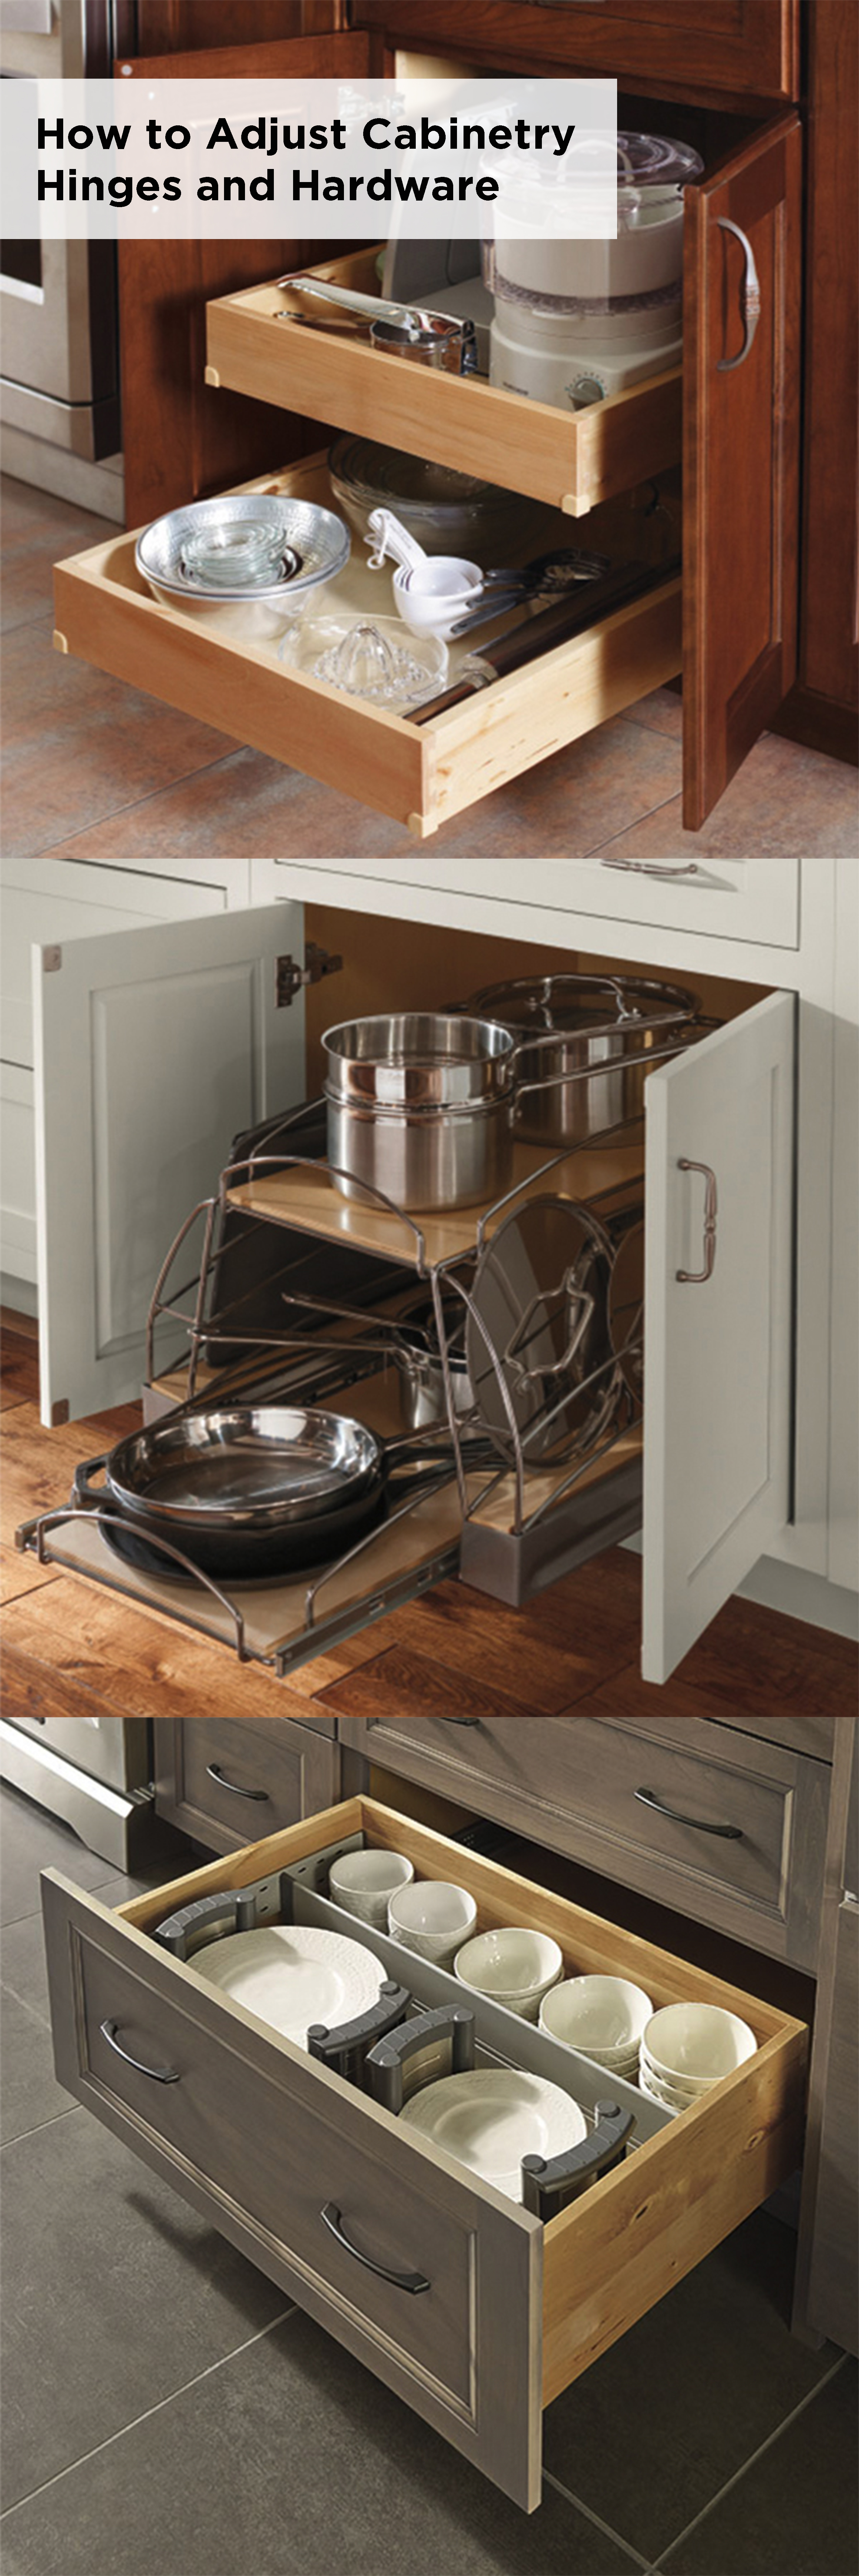 It Is Normal For Your Decora Cabinetry Hardware And Hinges To Loosen Over Time From Everyday Use These Ti Redo Kitchen Cabinets Kitchen Ideals Decora Cabinets